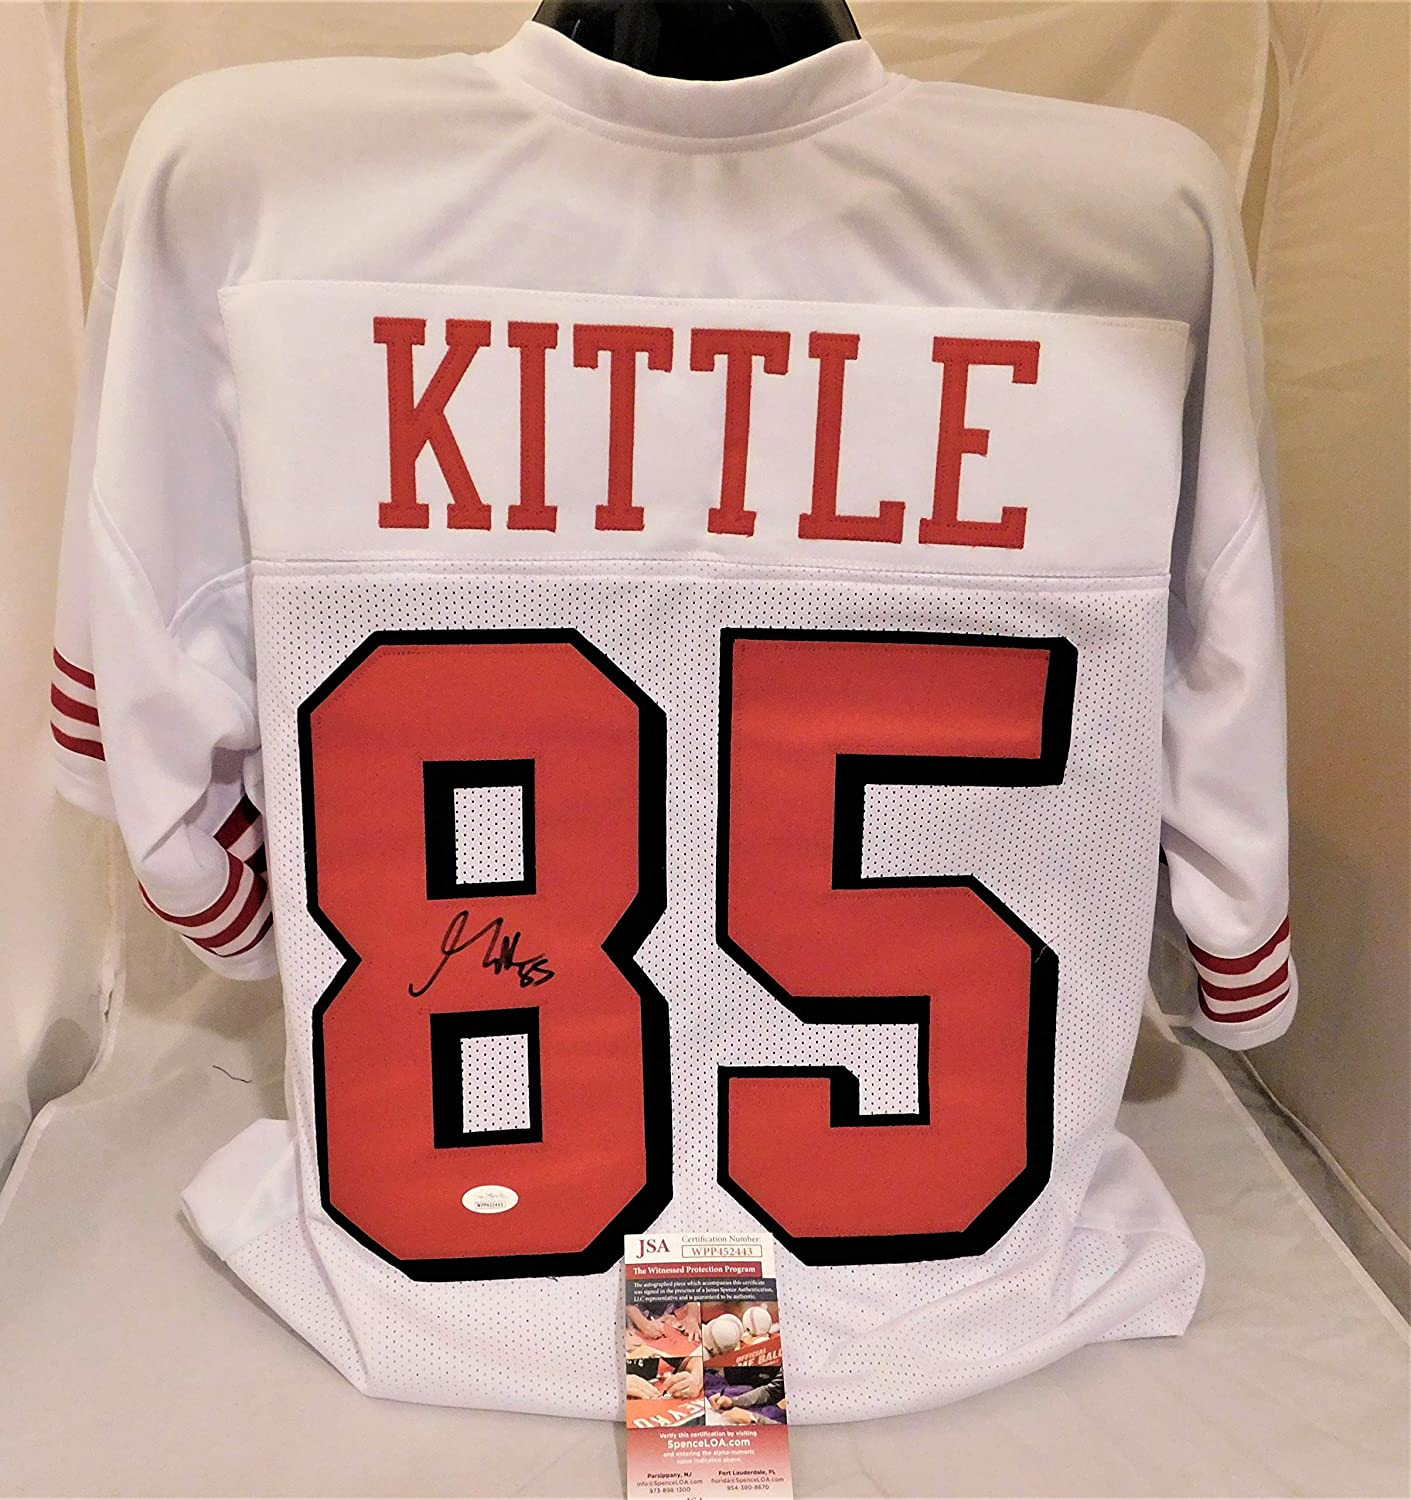 new style 1a995 1e707 Amazon.com: GEORGE KITTLE Signed/Autographed 49ers Authentic ...